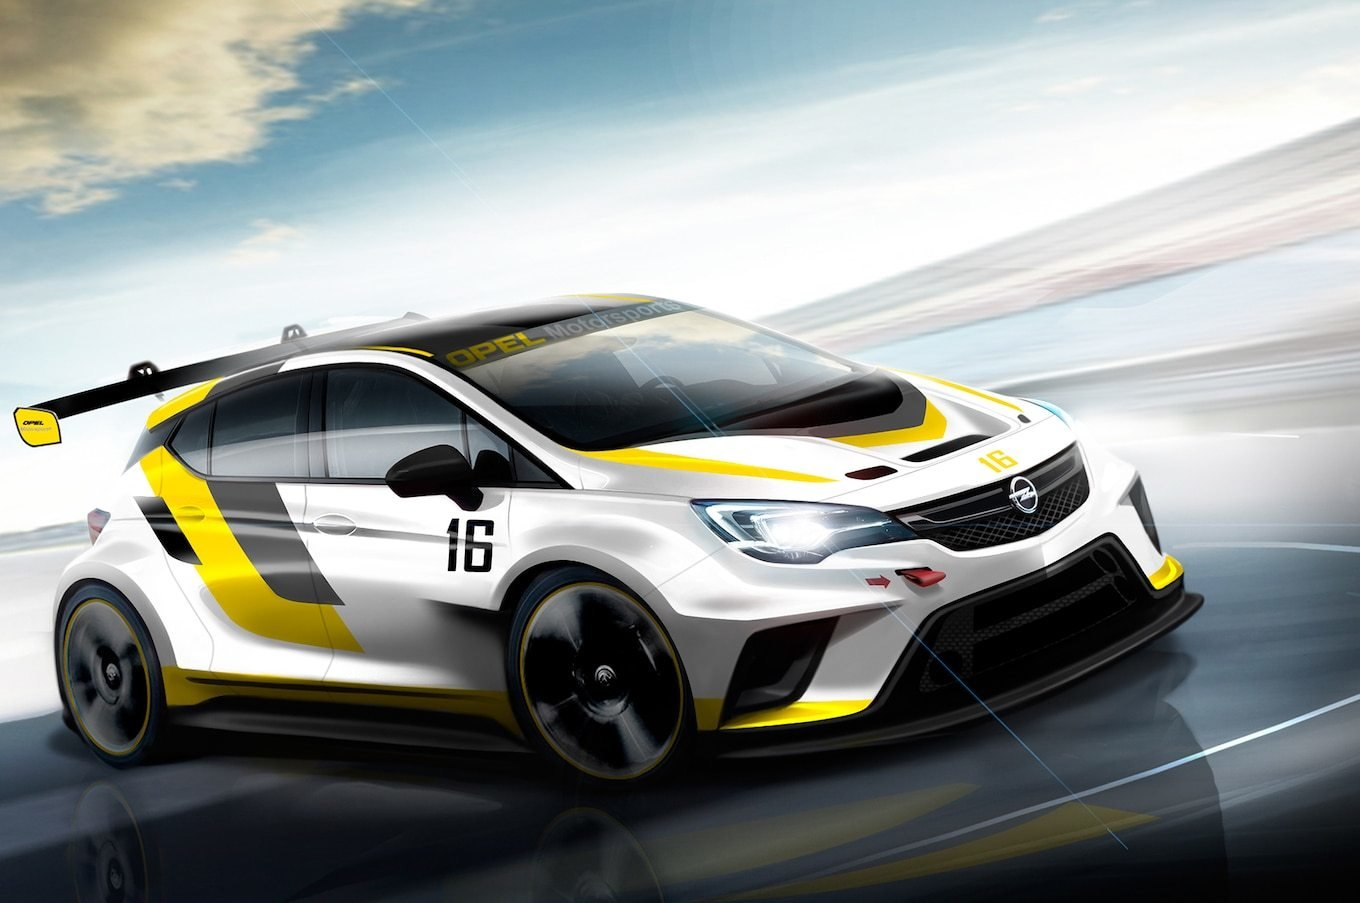 Latest Opel Developing 330 Hp Astra Race Car For Tcr Series Free Download